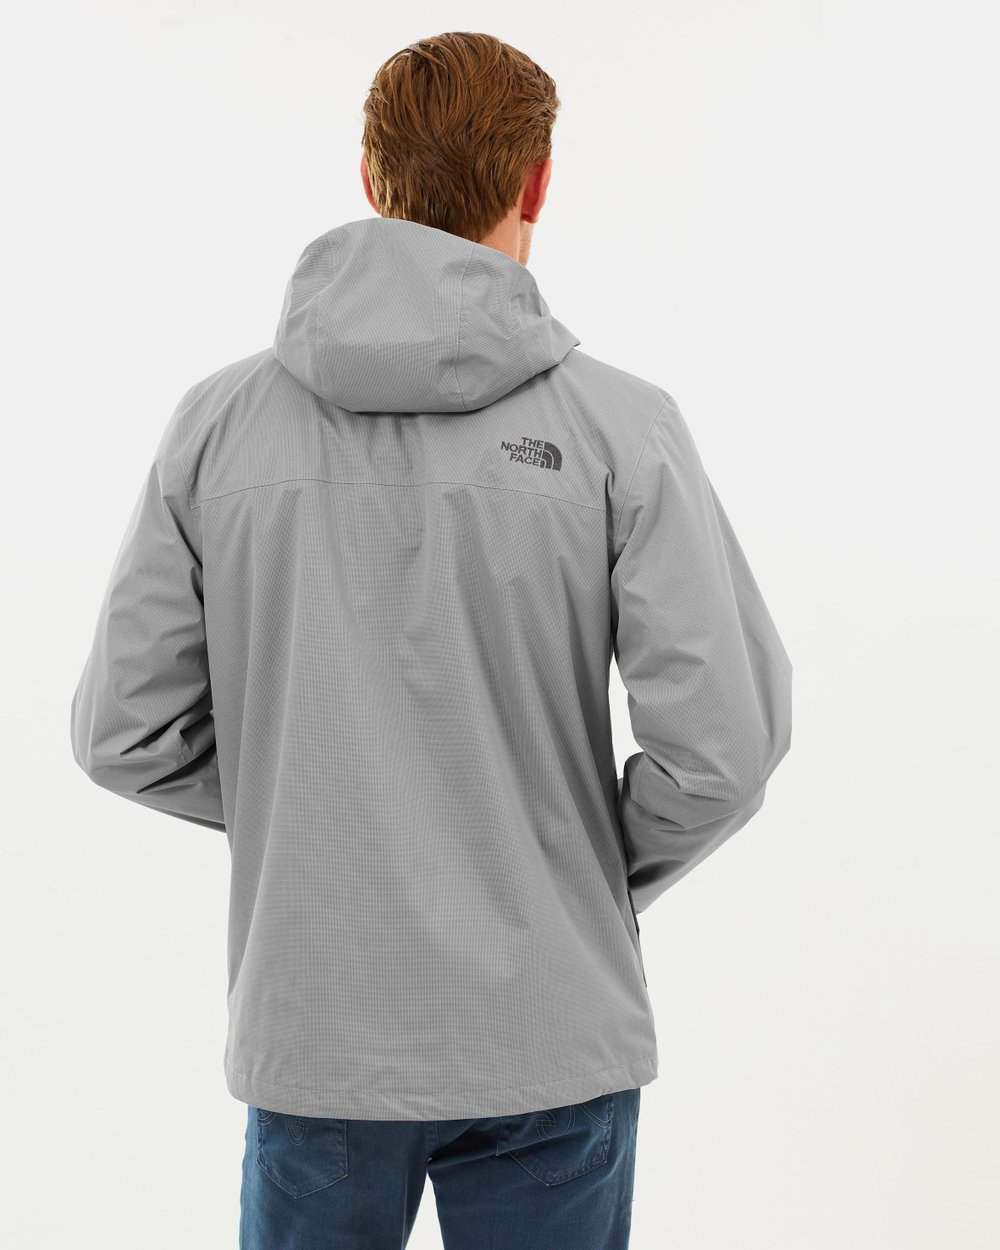 ae780a5c2 the north face arrowood triclimate 3 in 1 jacket mens brook